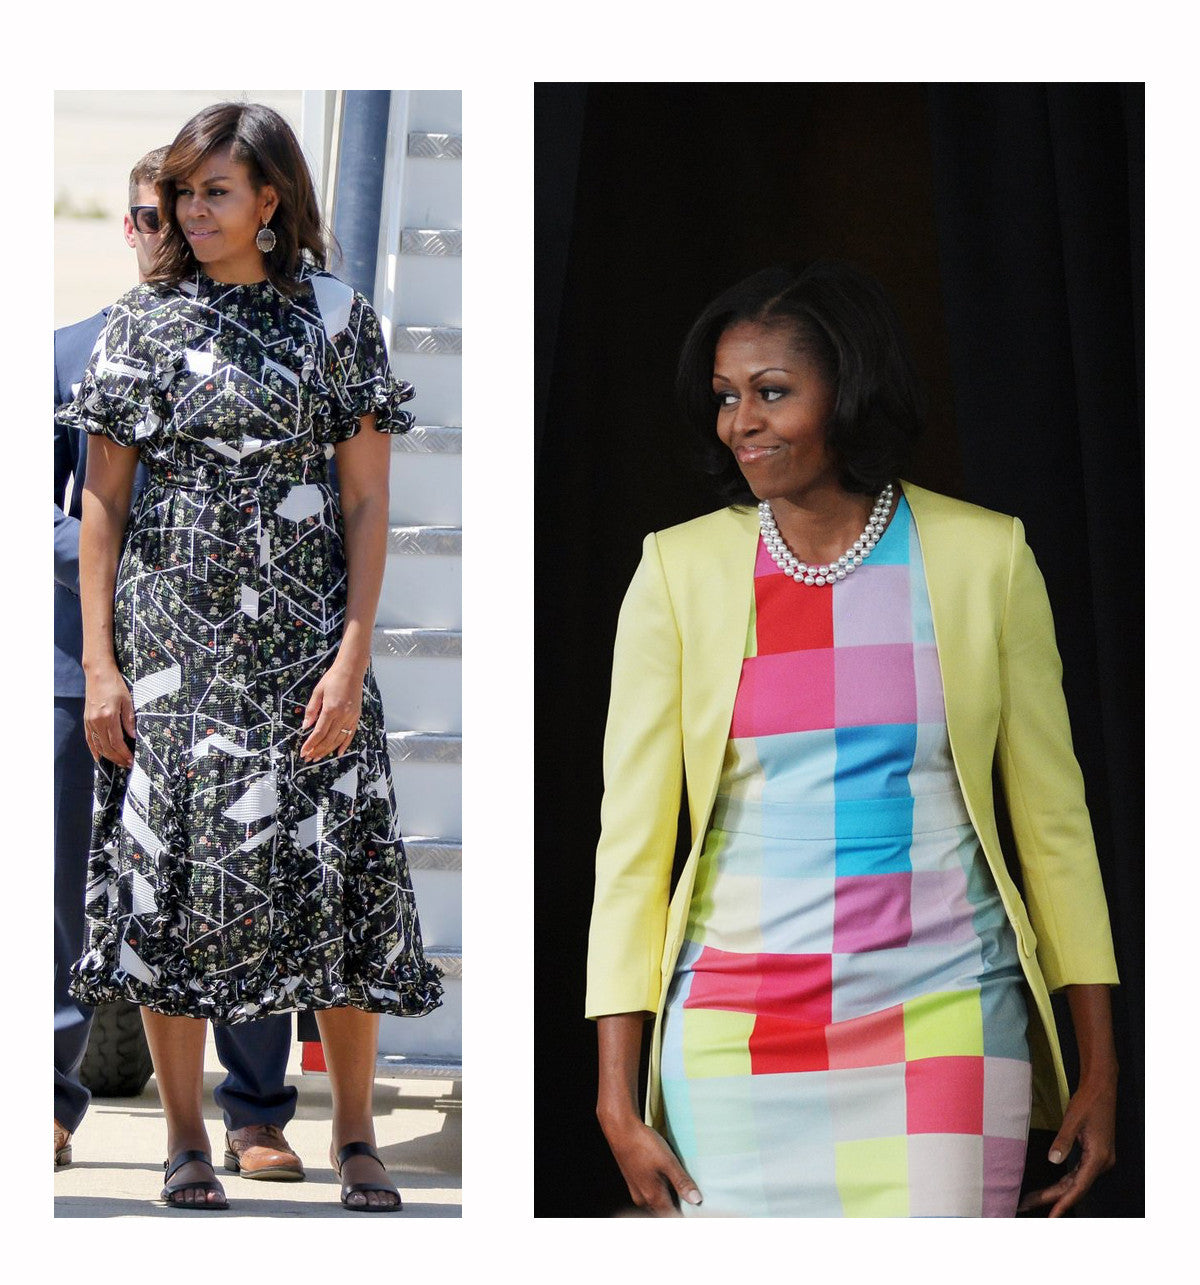 Michelle Obama wearing Preen by Thornton Bregazzi